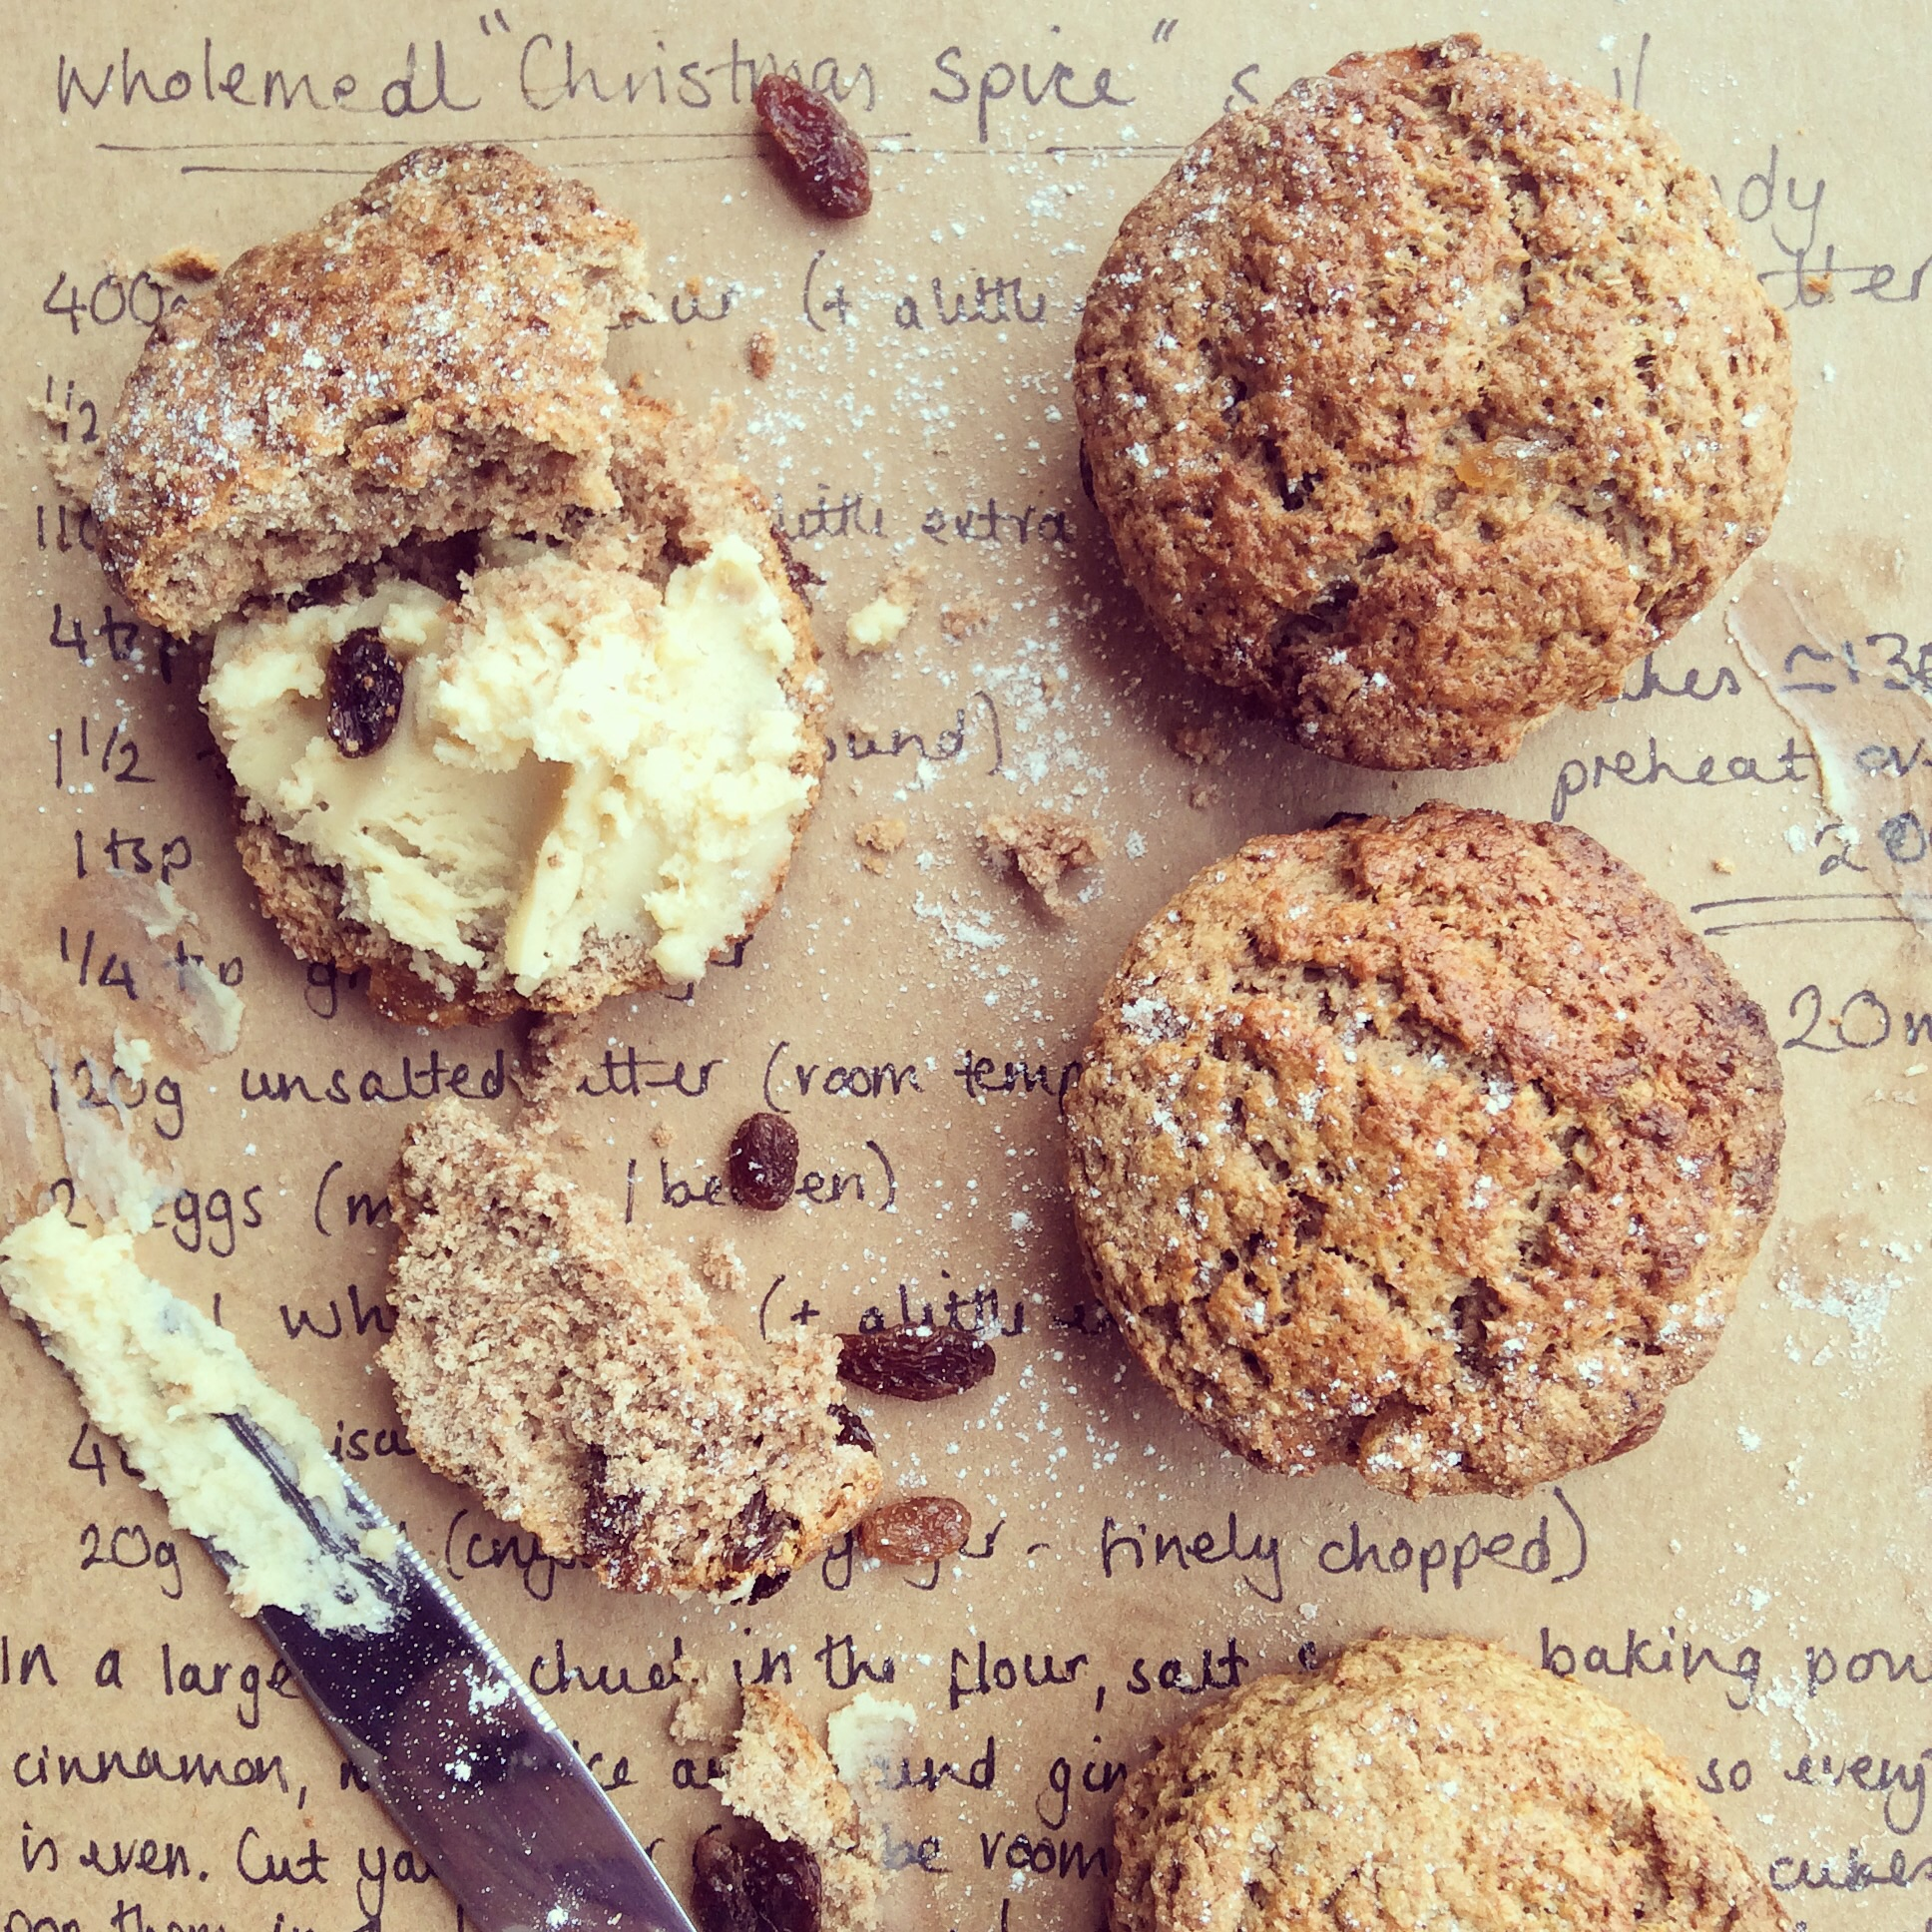 Can You Make A Christmas Cake With Wholemeal Flour